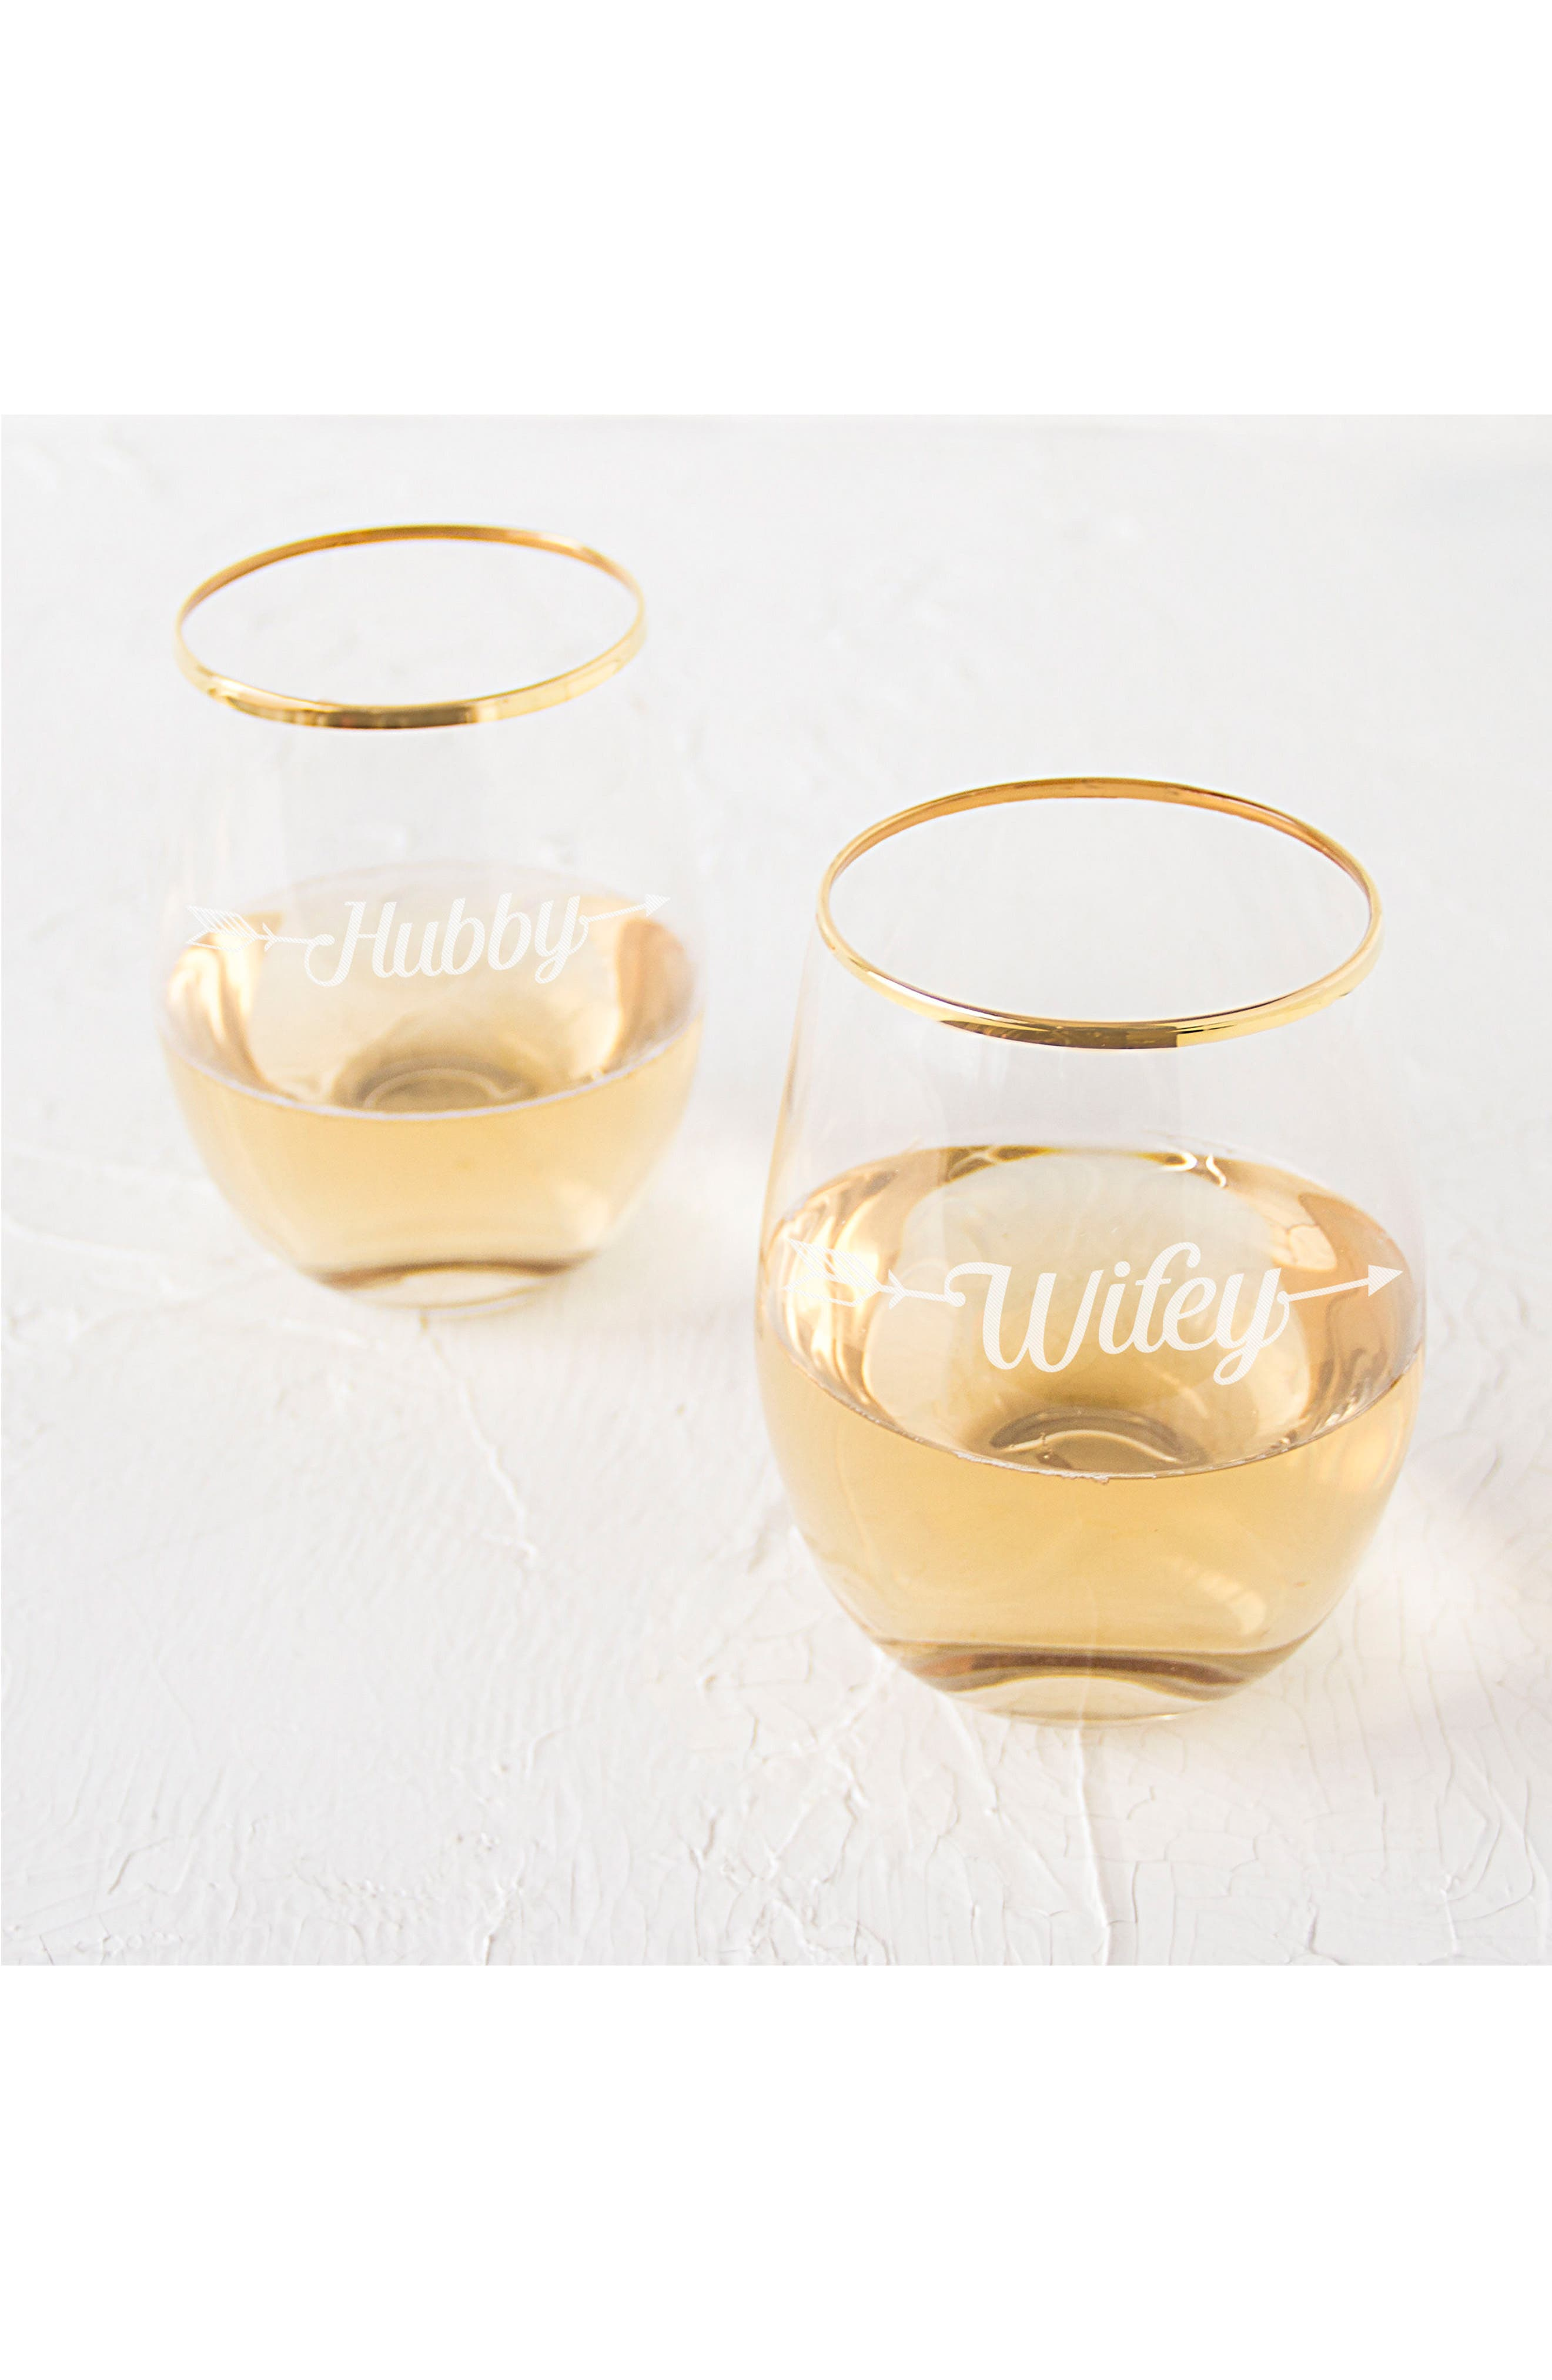 Hubby/Wifey Set of 2 Gold Rimmed Stemless Wine Glasses,                             Alternate thumbnail 3, color,                             710